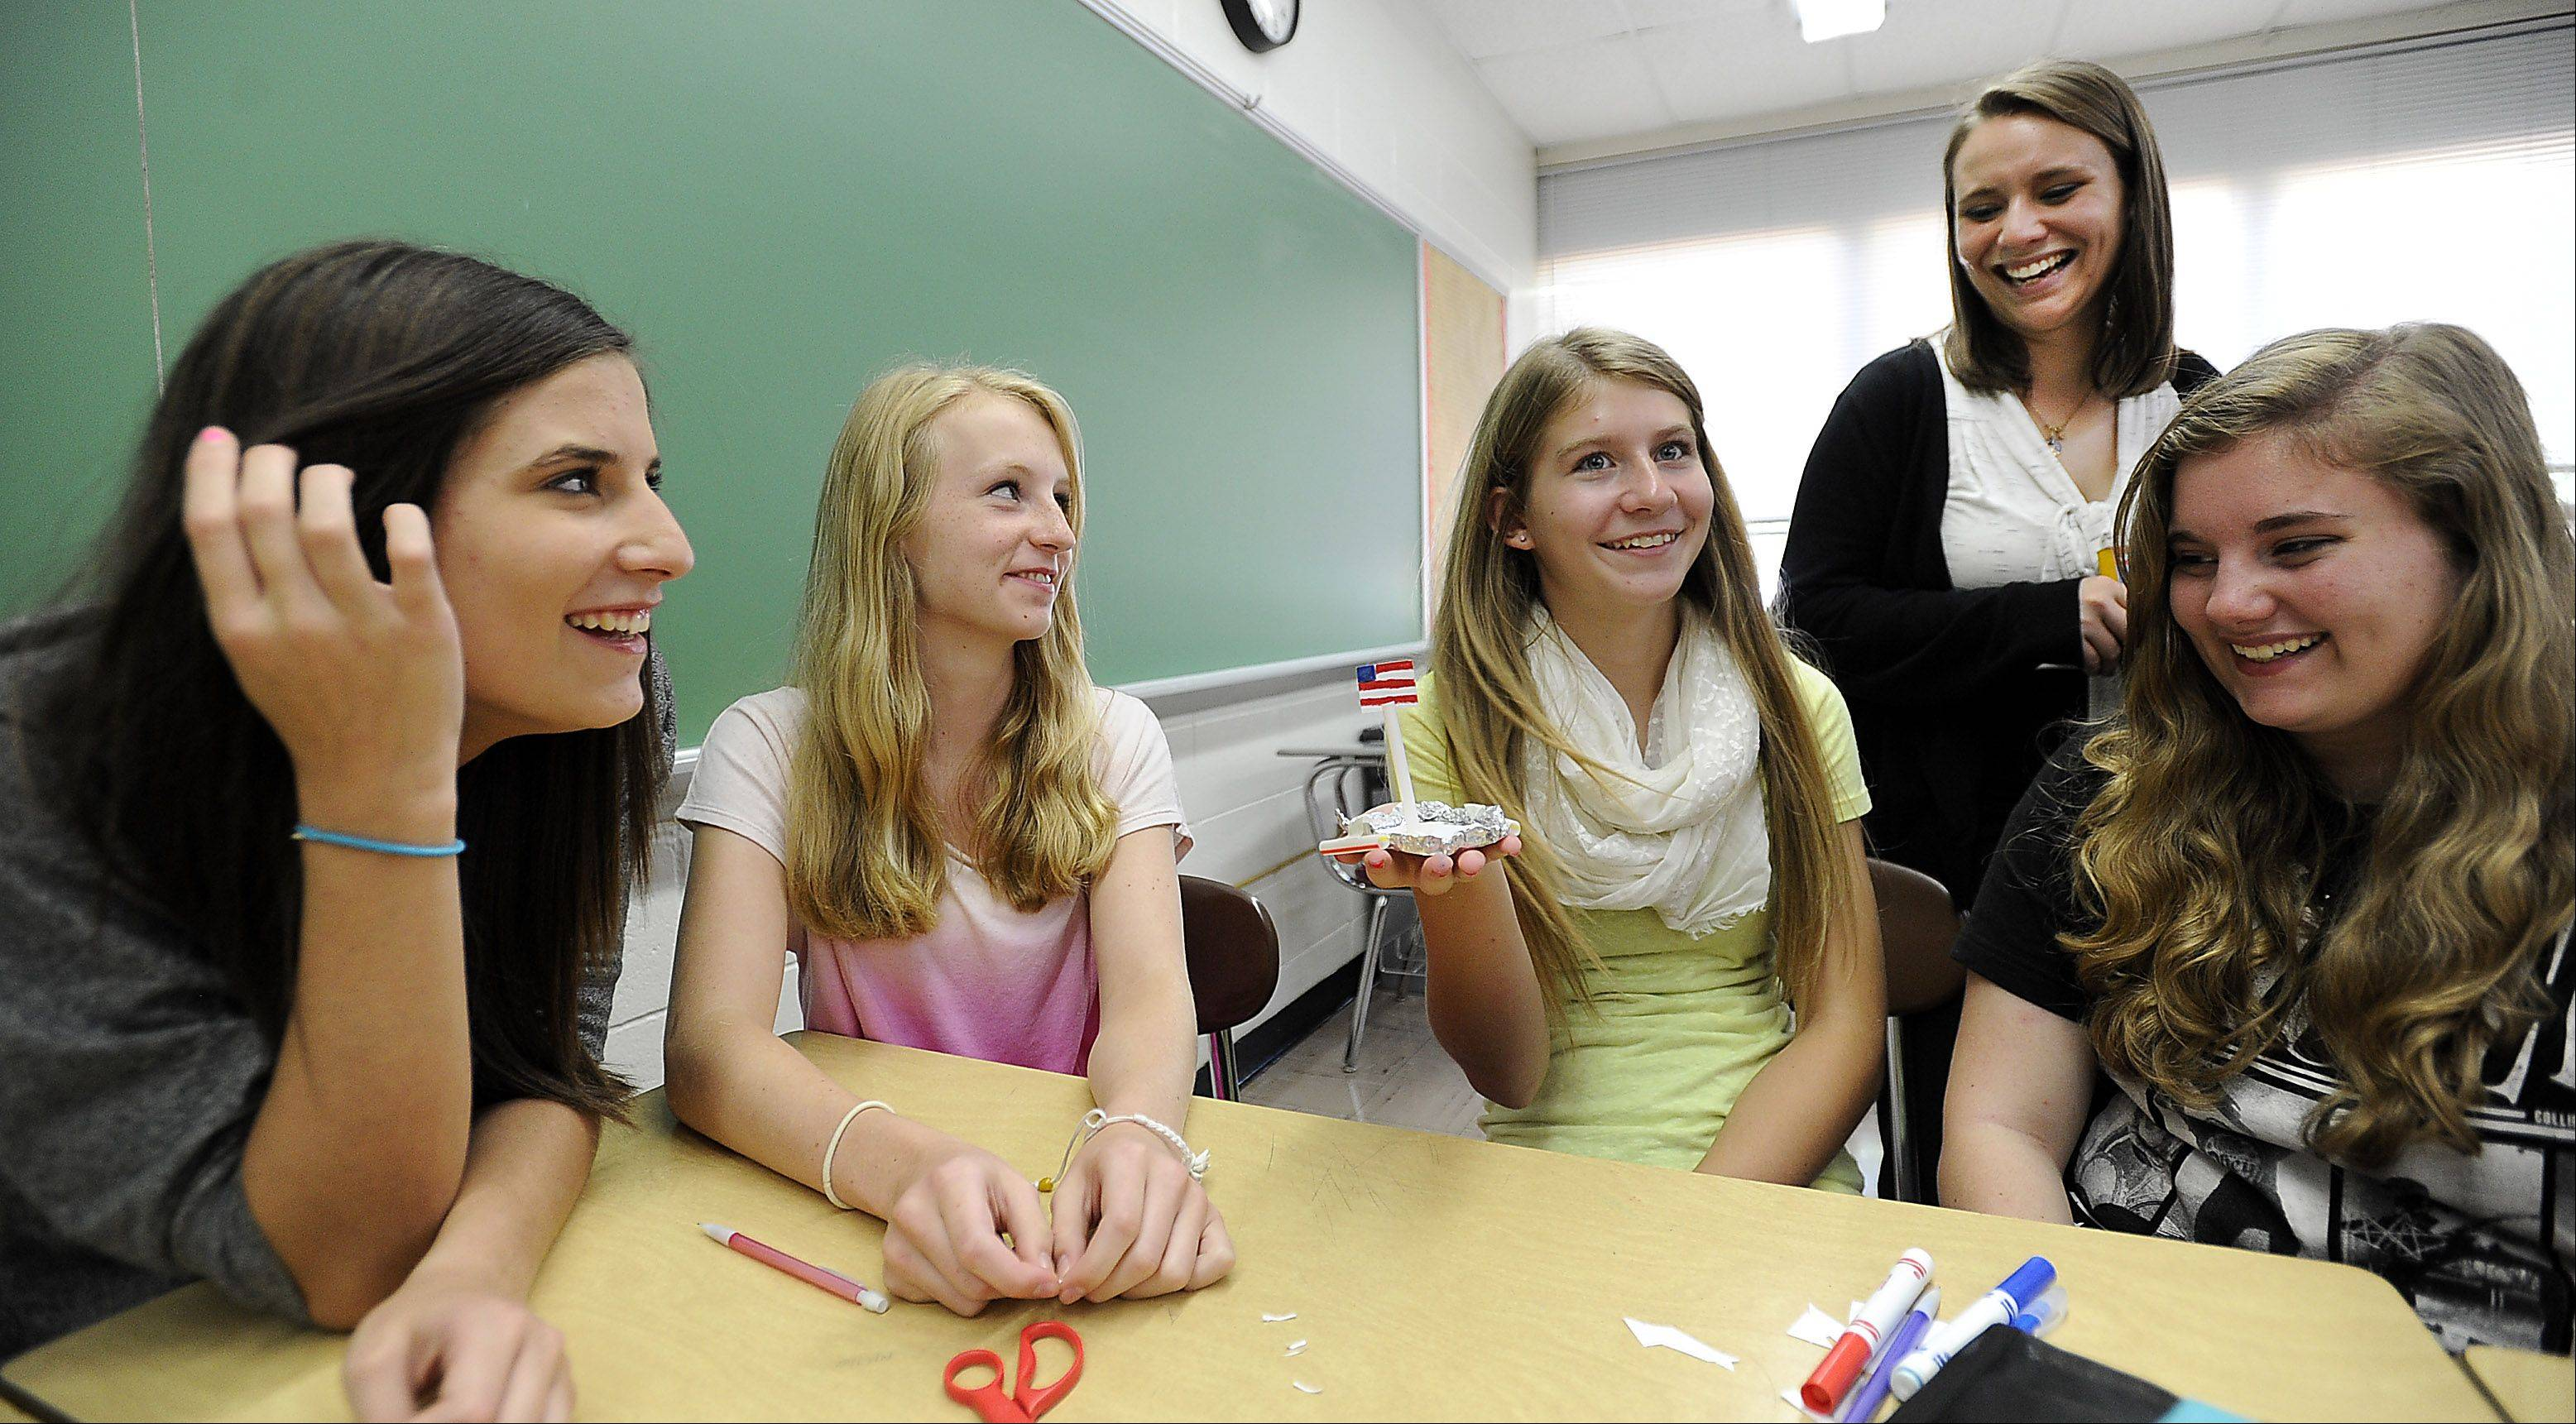 New Mundelein High School math teacher Maggie Sharp looks over the paper boat constructed by Anjelika McFeely, 14, Claire Whitemarsh, 14, Annie McGarth, 14, and Jenna Geary, 14, during their first day of class. They would later see how many pennies it would hold while floating in water -- 99 pennies is the current record.